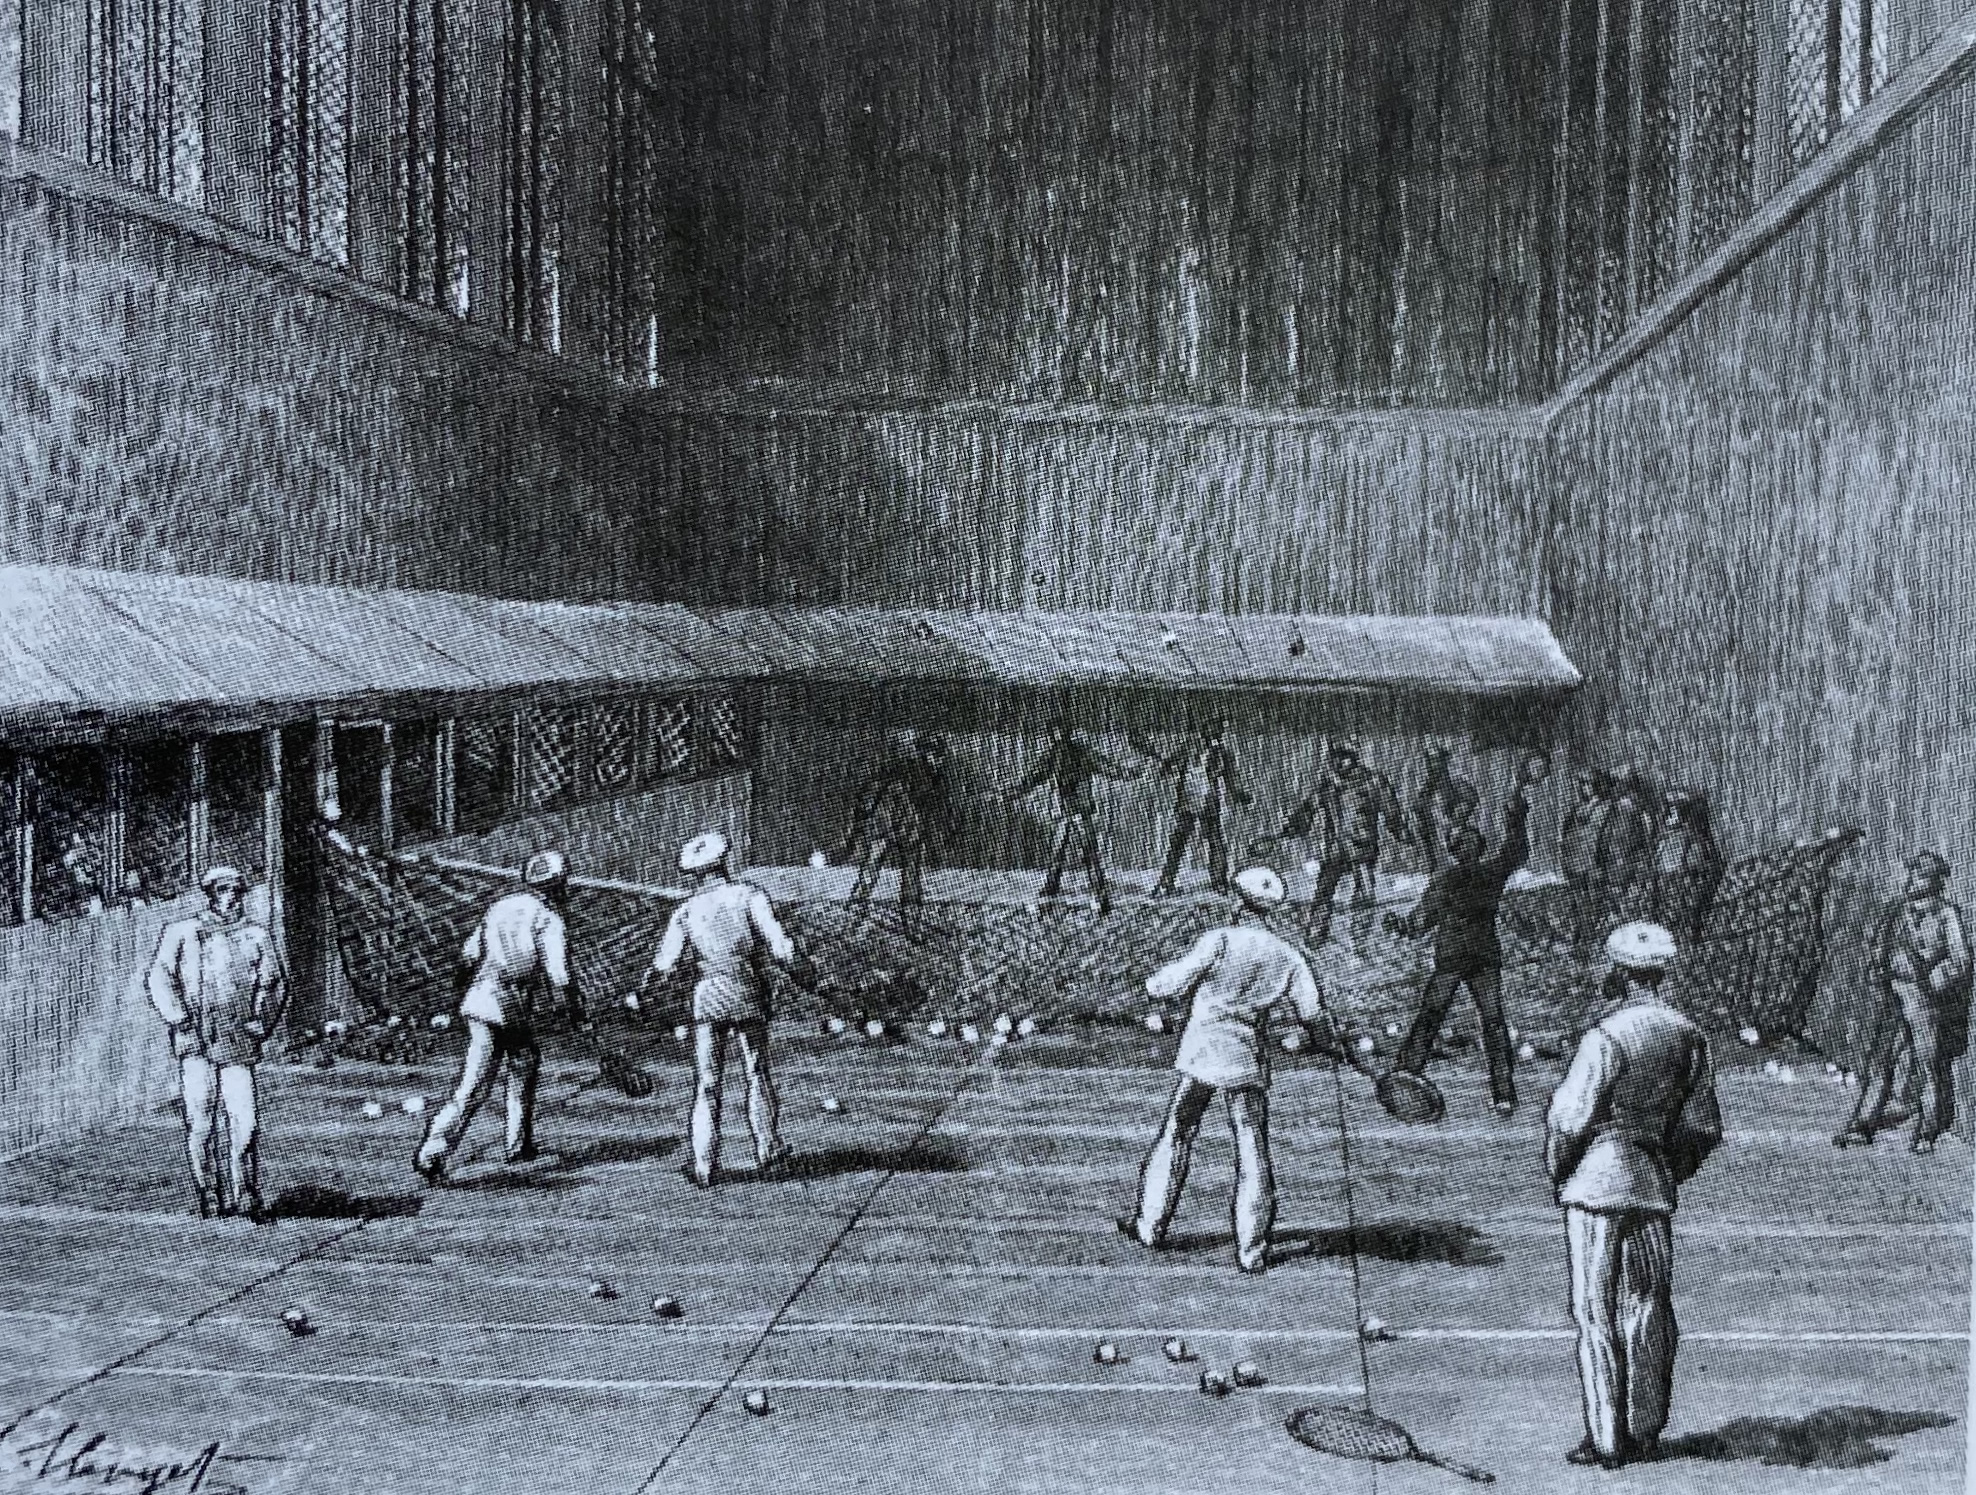 Second court at Tuileries 1880